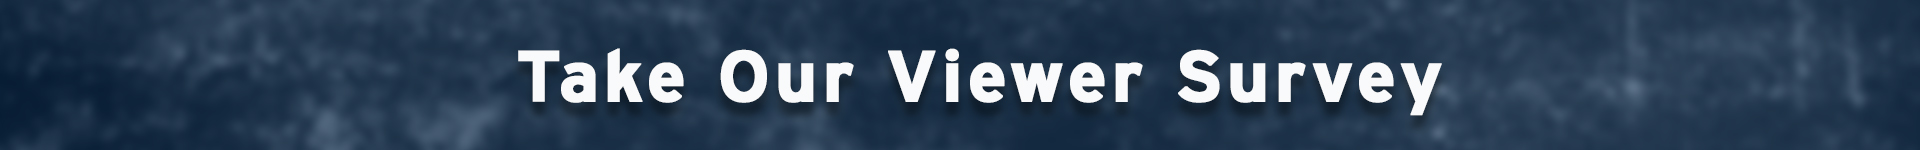 viewer survey banner.jpg